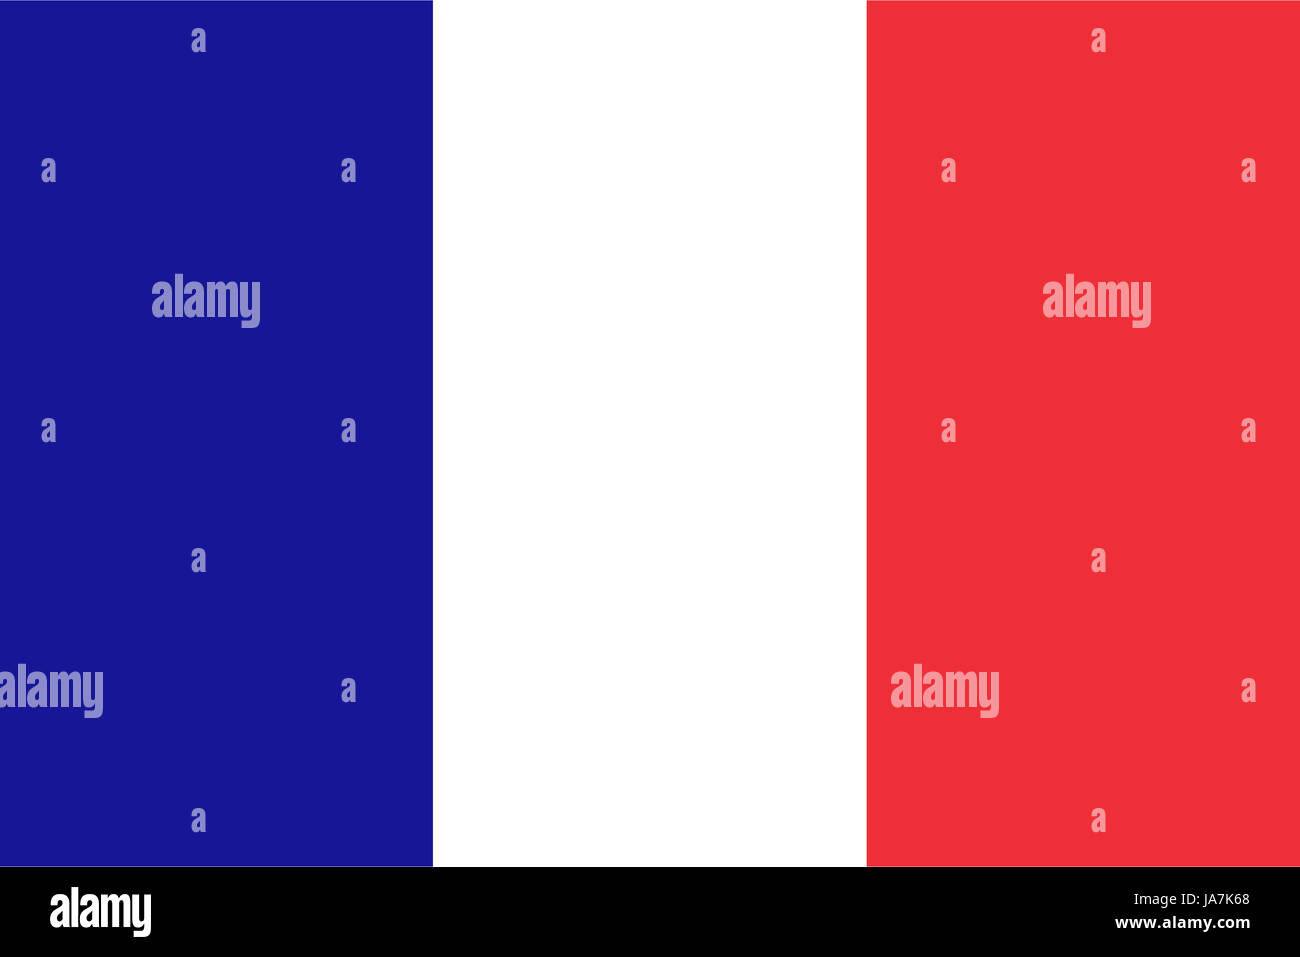 Official French flag of France - Proportions: 3:2 - Colours: Reflex Blue, Safe white, Red 032 - Stock Image